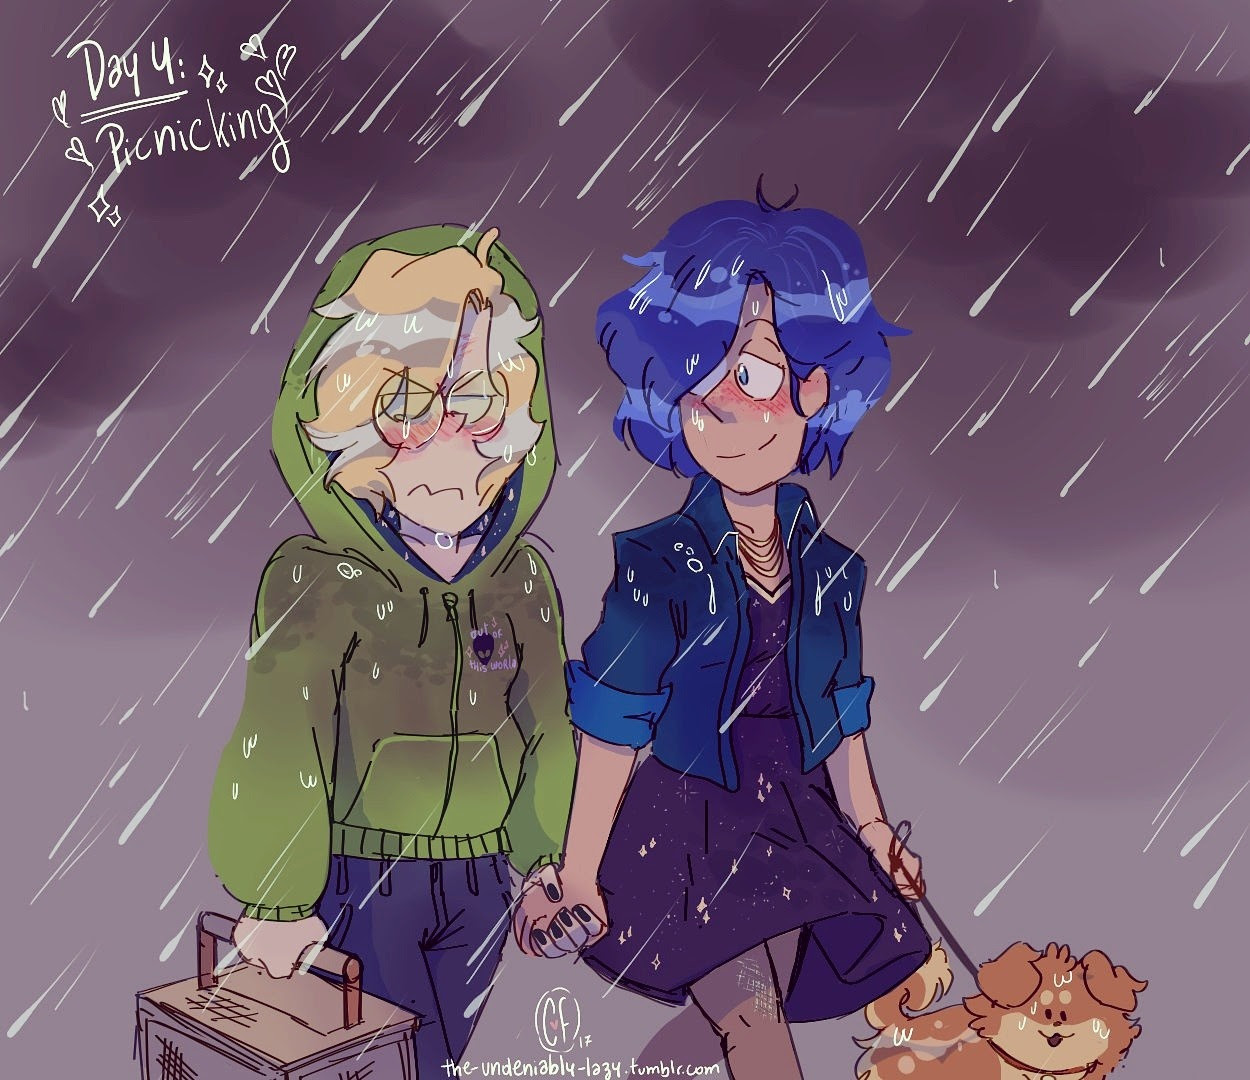 Day 4: Picnicking ✨✨✨Peridot's date wasn't very planned, Lapis loved it anyway ((also Pumpkin messed Peridot's shirt up with mud))